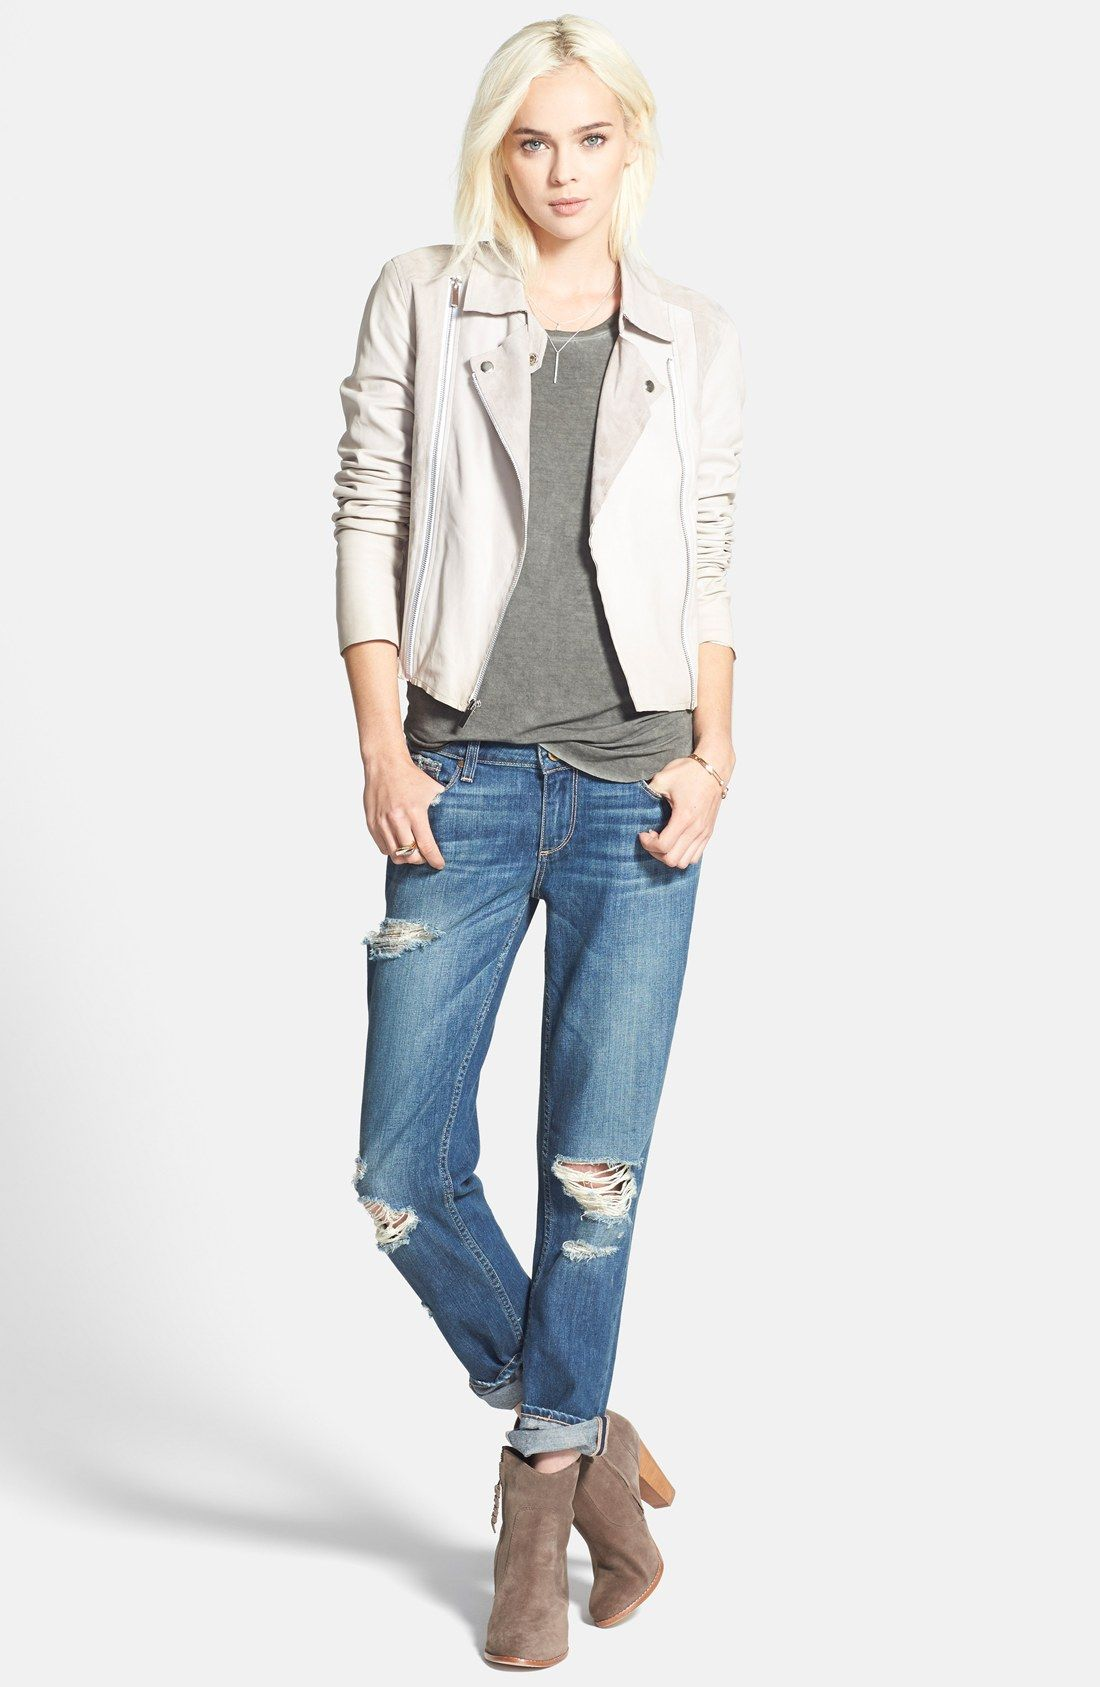 Paige Denim 'Silvie' Suede & Leather Moto Jacket Denim